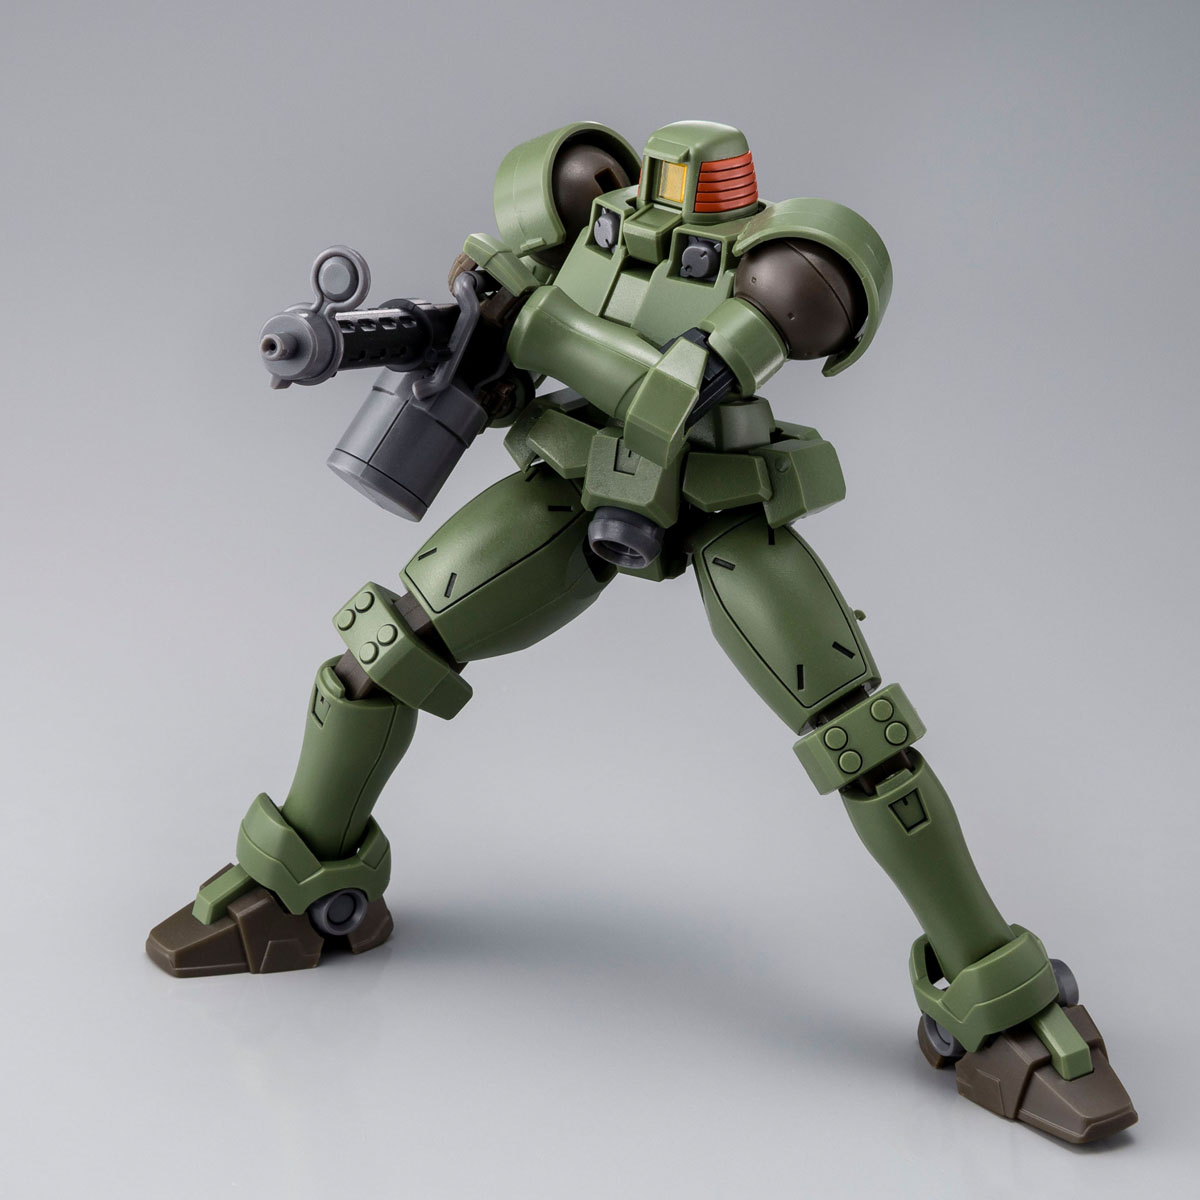 HG 1/144 LEO (FULL WEAPON SET)